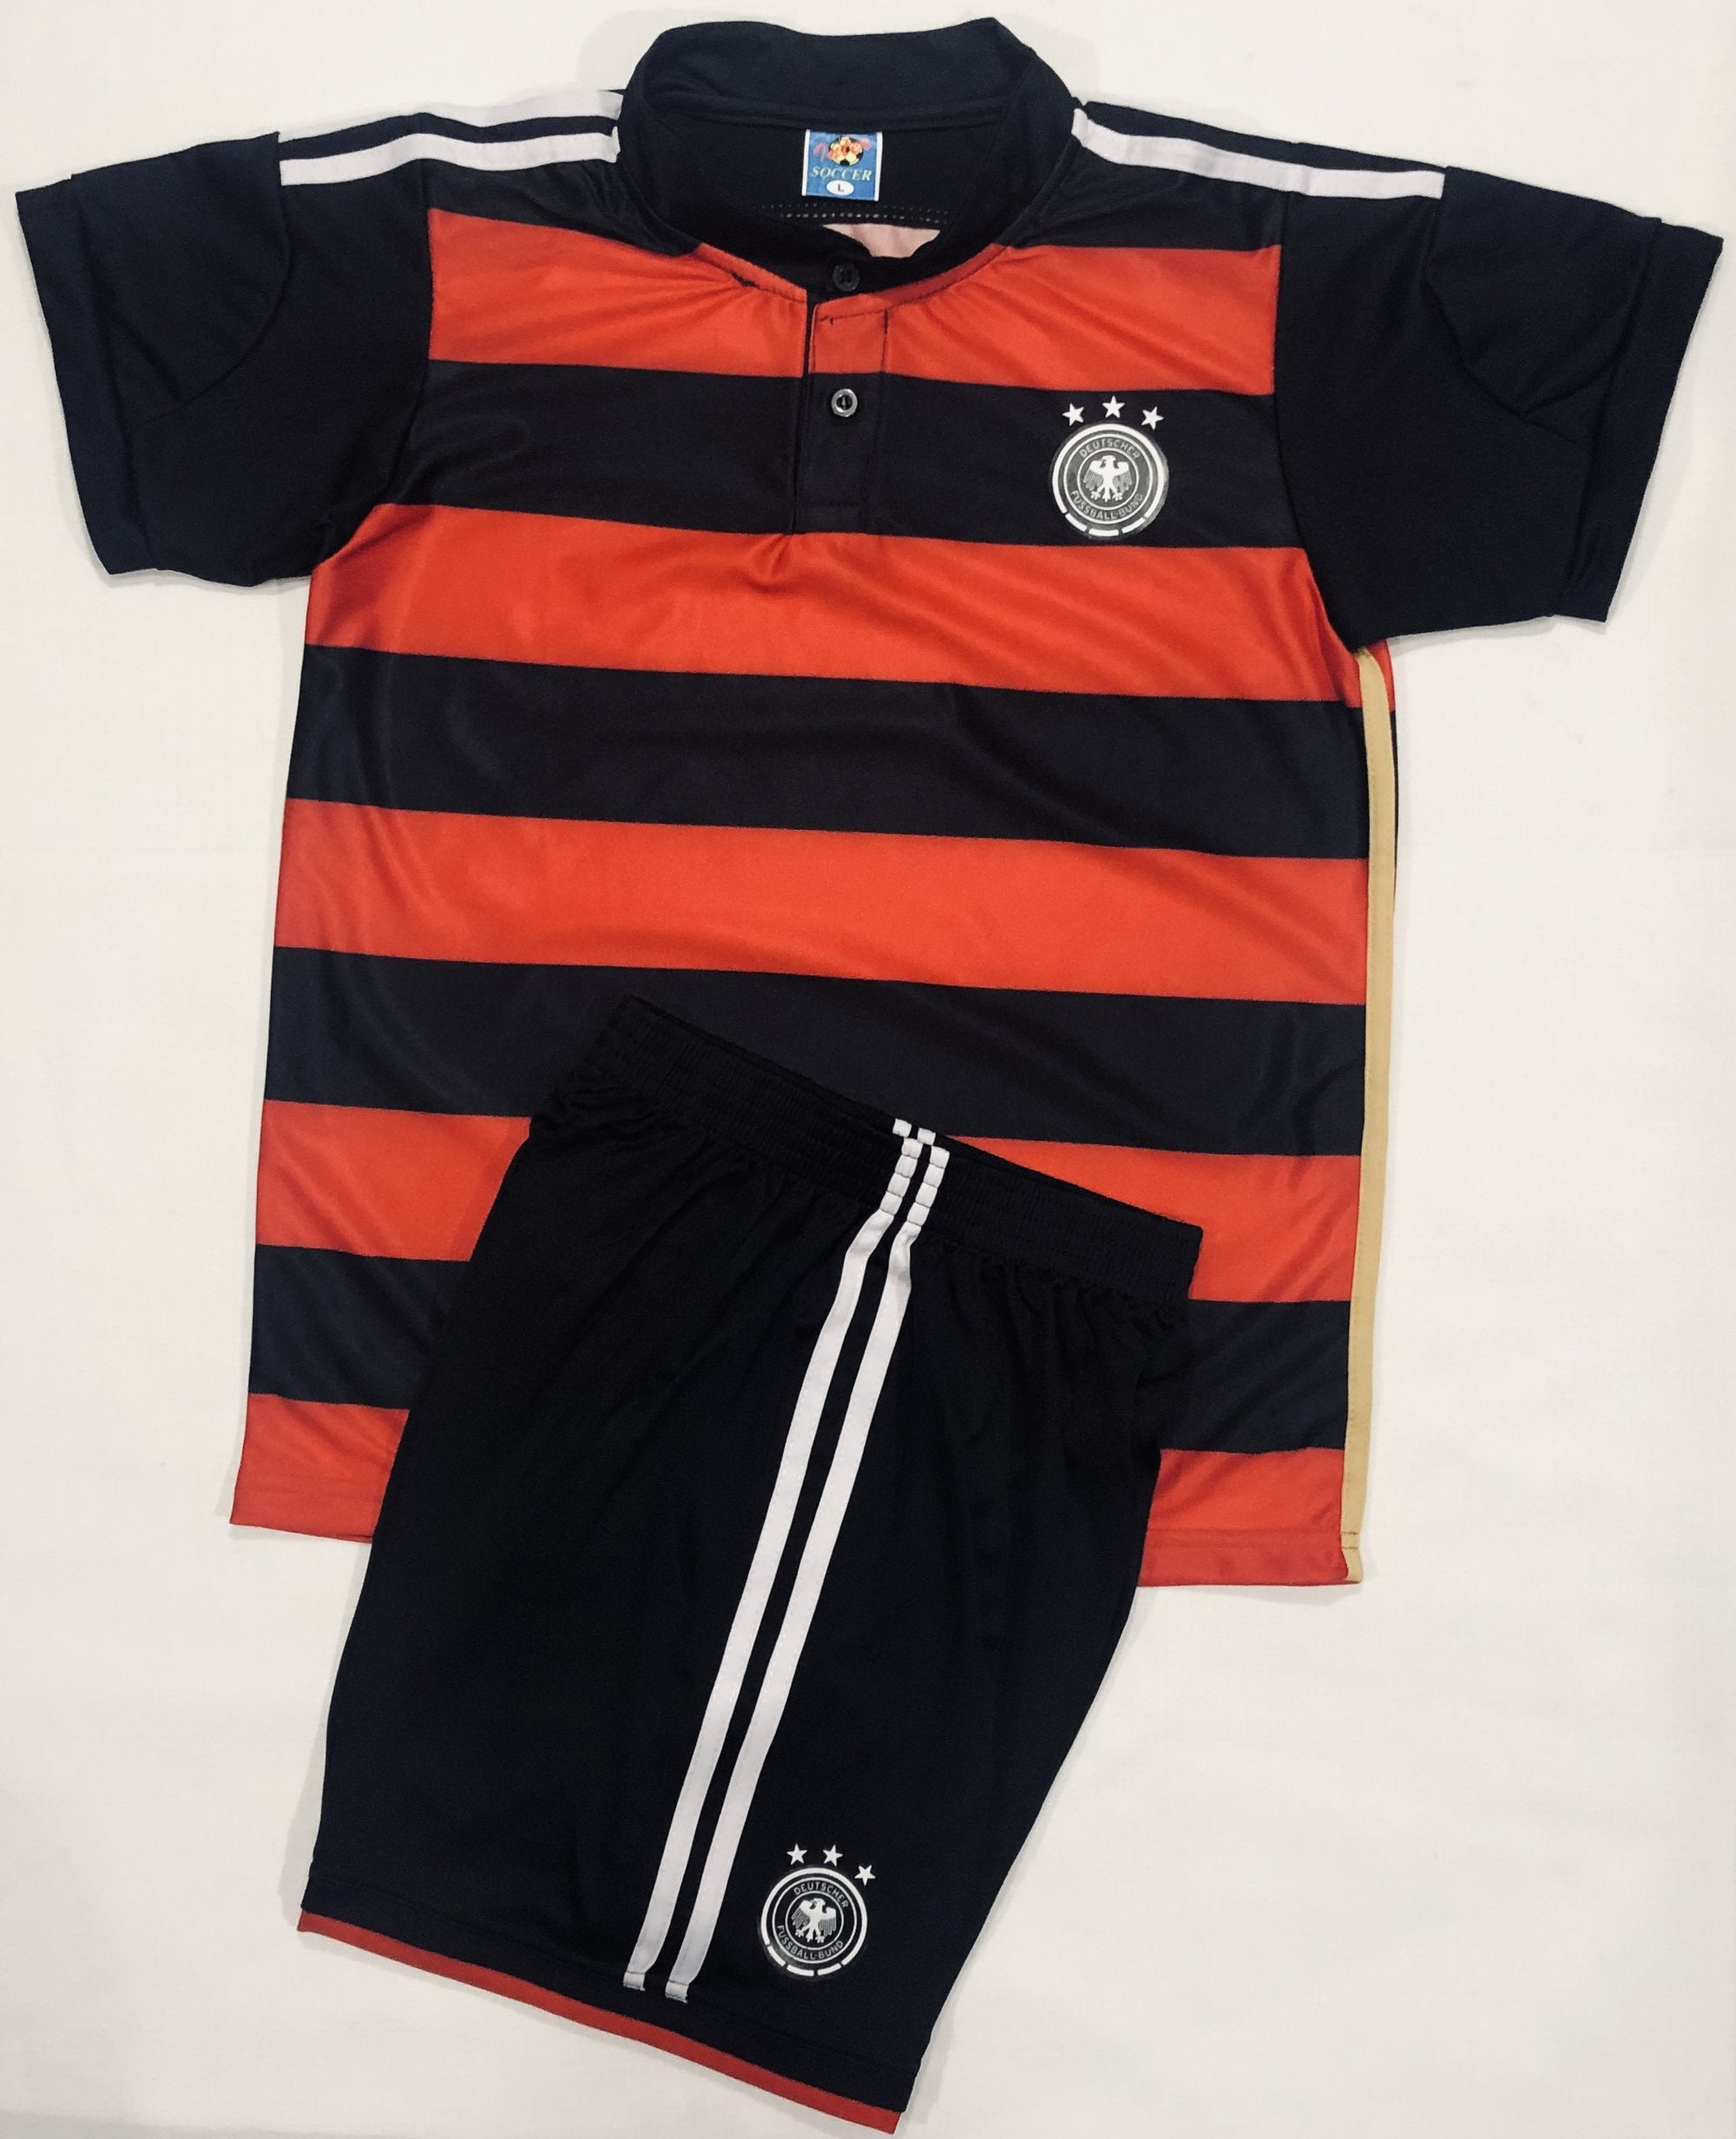 GERMANY AWAY WC2014 KIDS 2-PIECE SOCCER SET